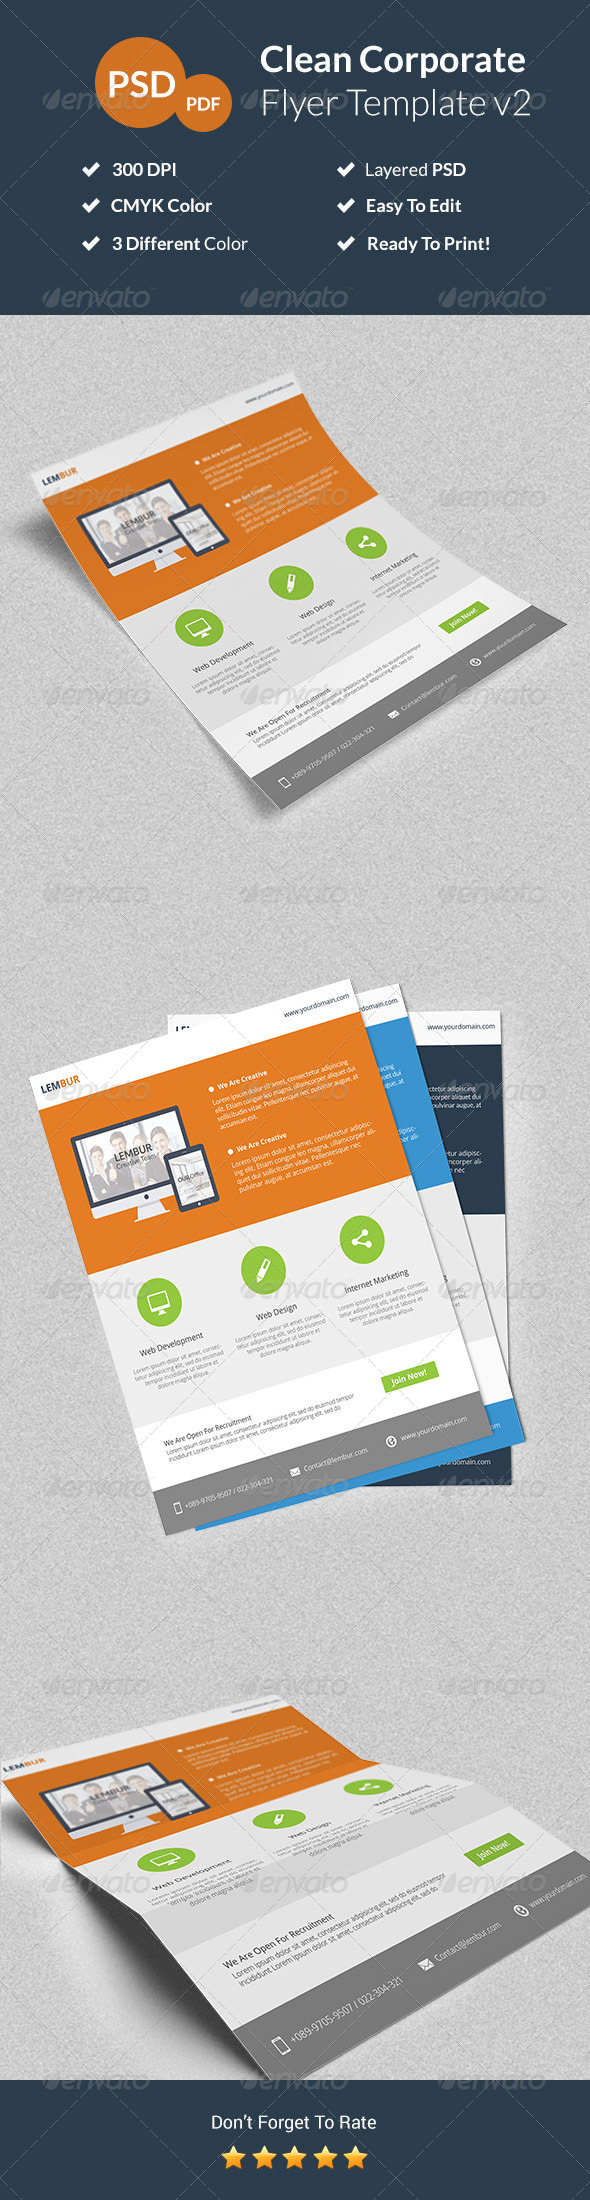 GraphicRiver Clean Corporate Flyer v2 8020375